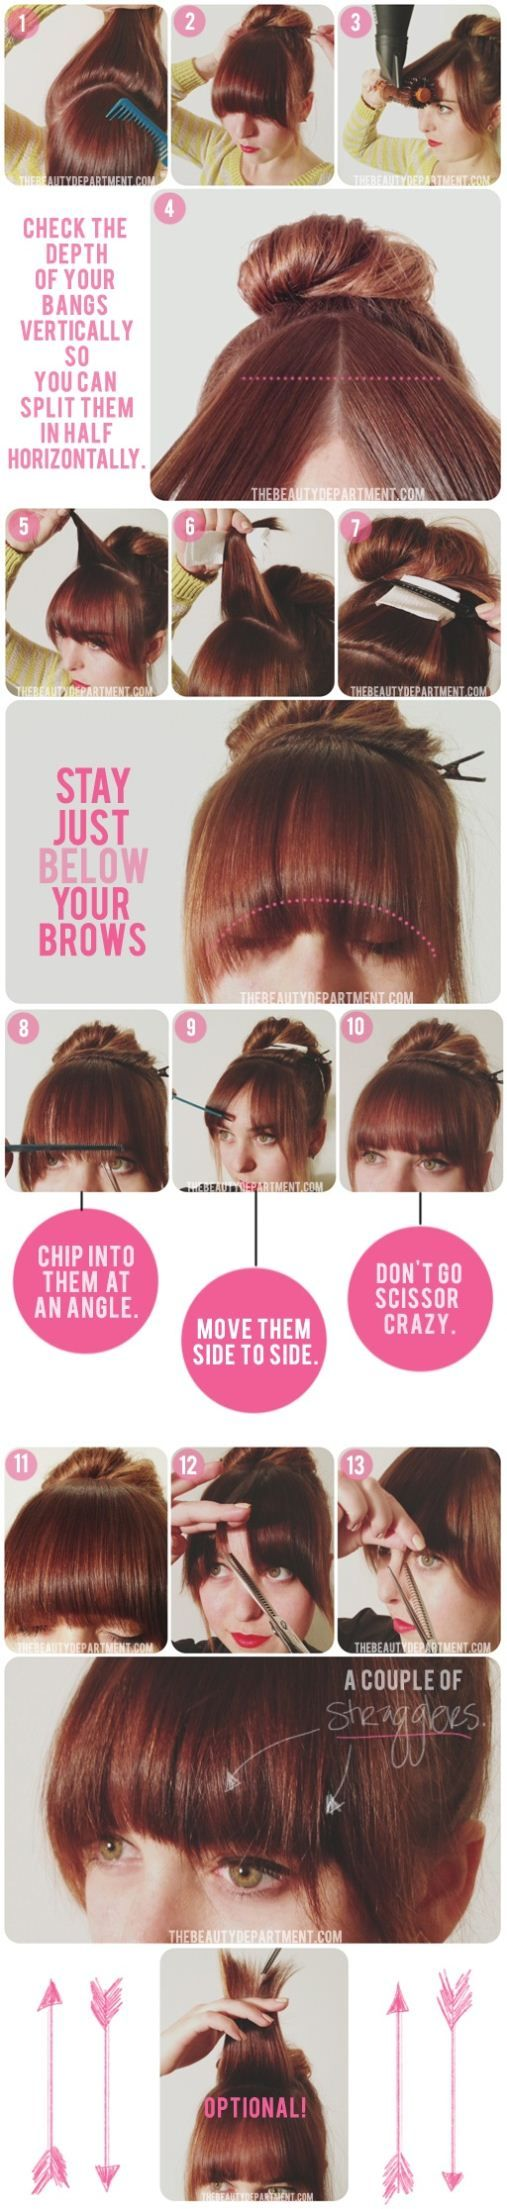 how-to-cut-your-bangs via